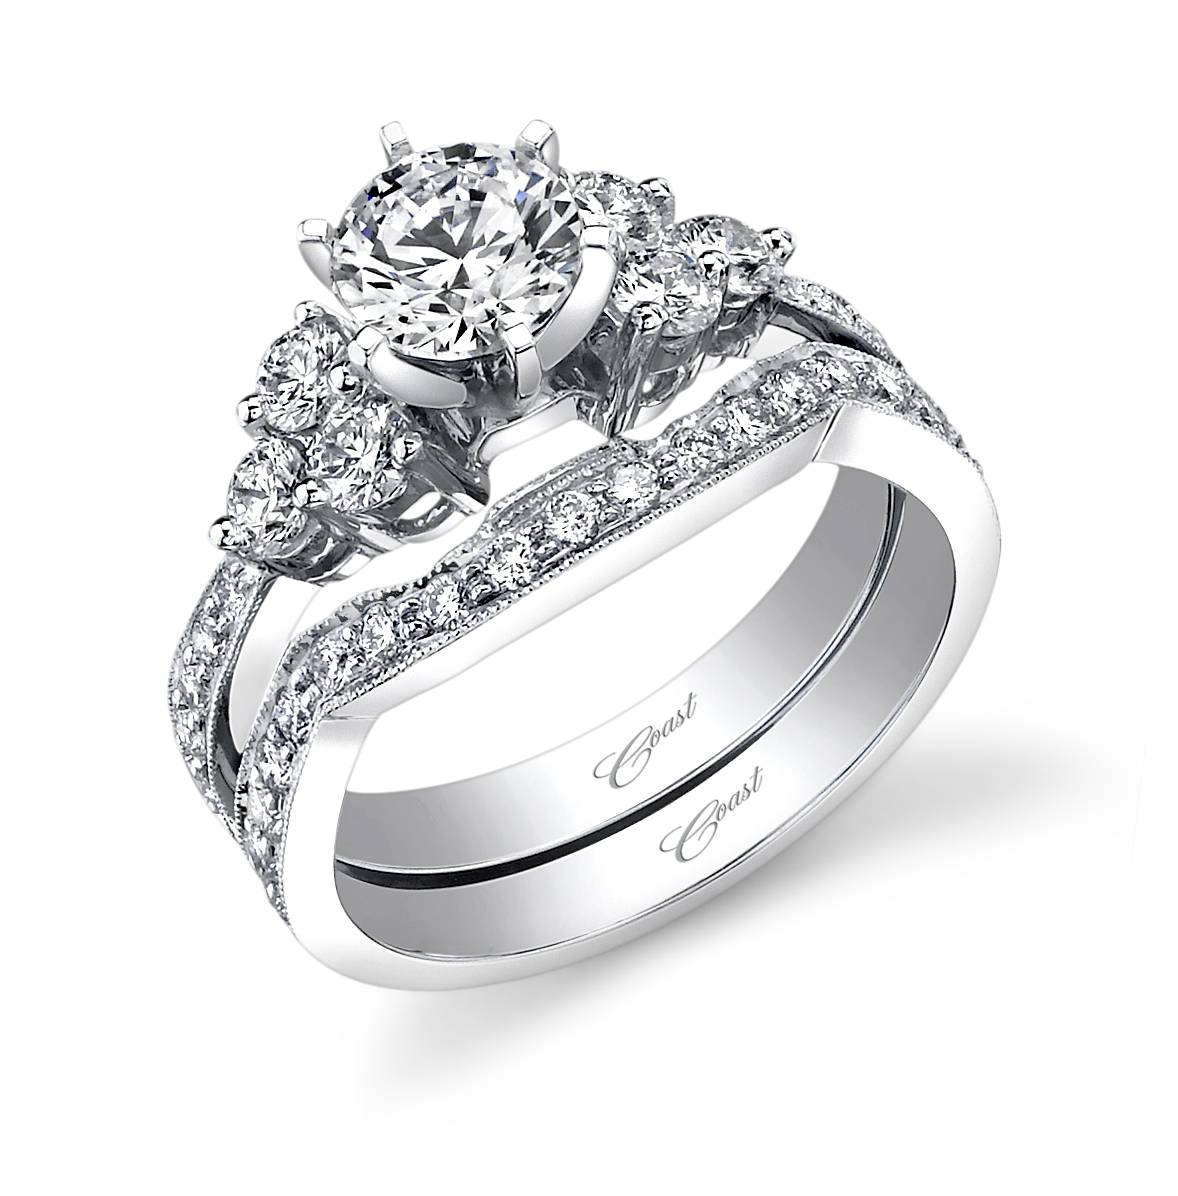 Engagement Rings | Worthington Jewelers Within Diamond Cluster Wedding Rings (View 9 of 15)